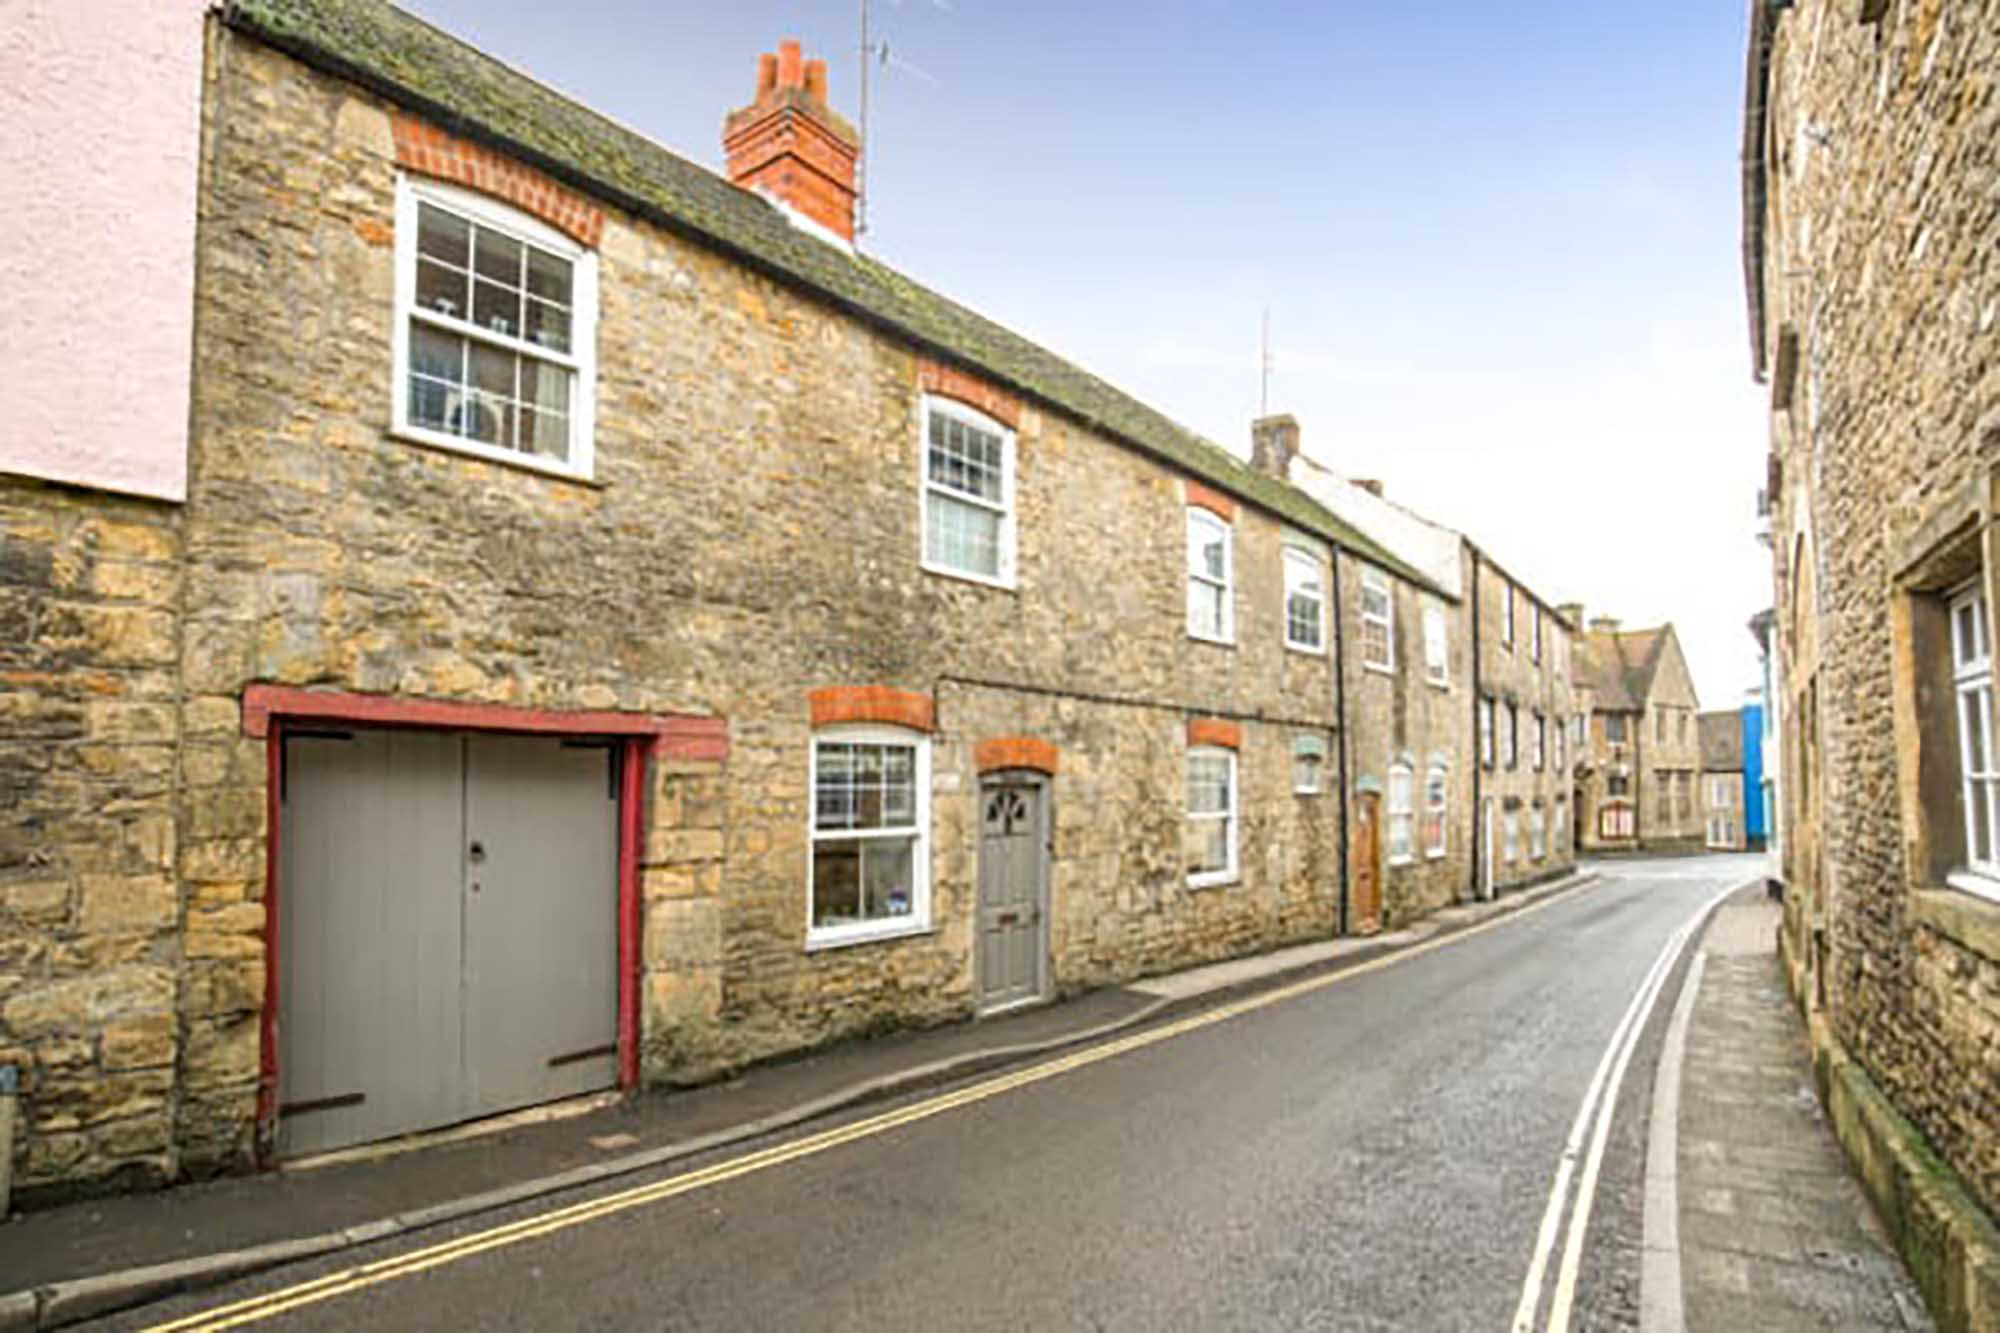 BRUTON-4 Bedroom stunning period property with walled garden, carport and two storey stone outbuilding.